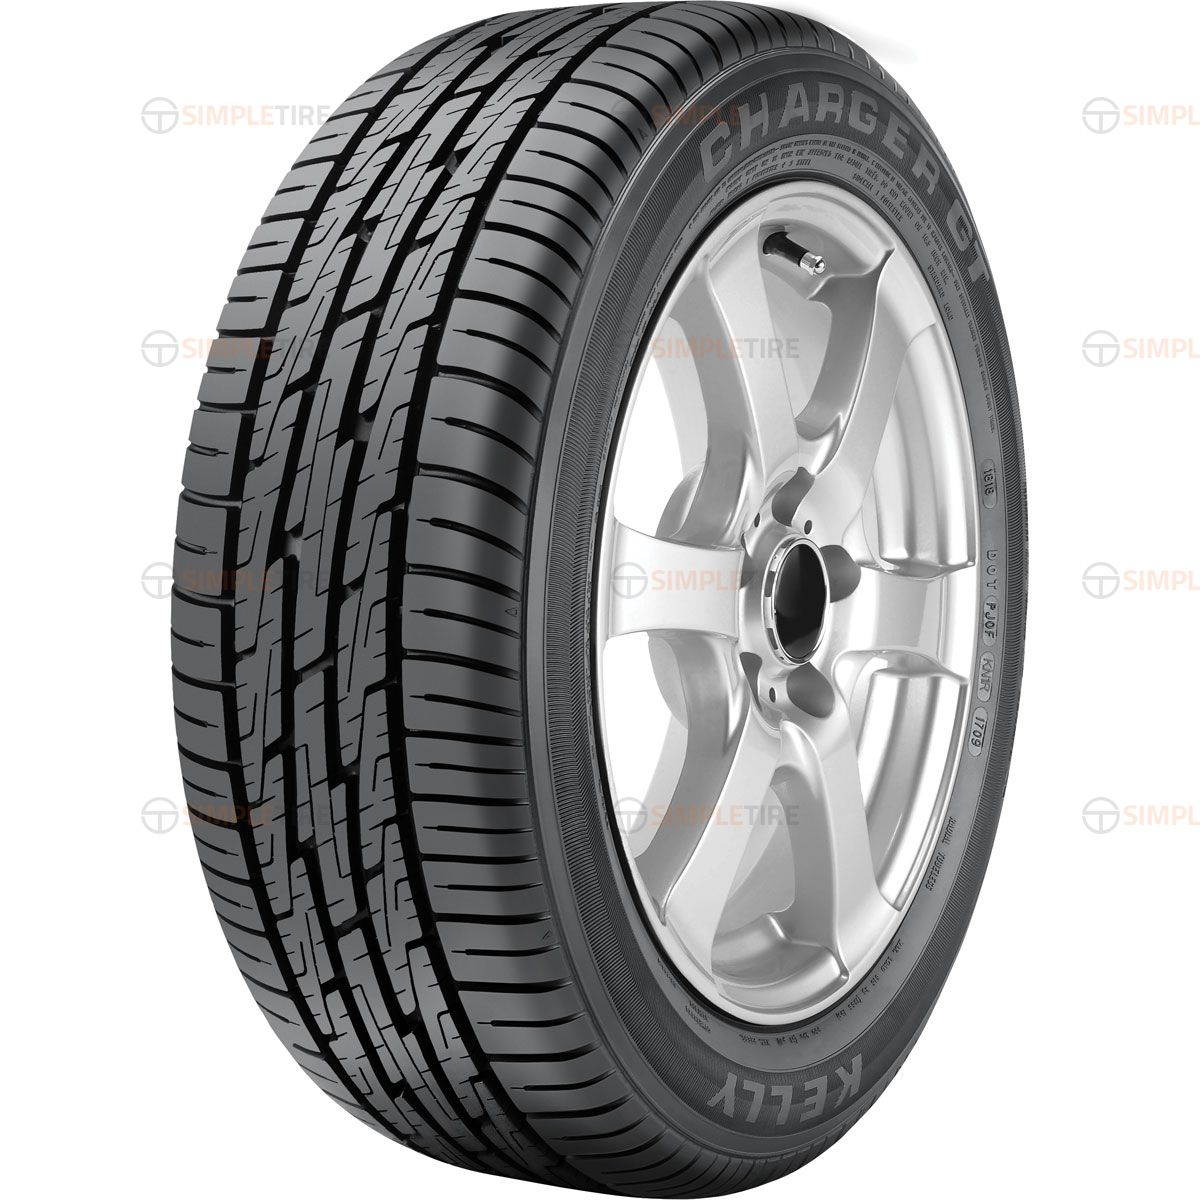 356500730 P195/60R15 Charger Kelly Tires